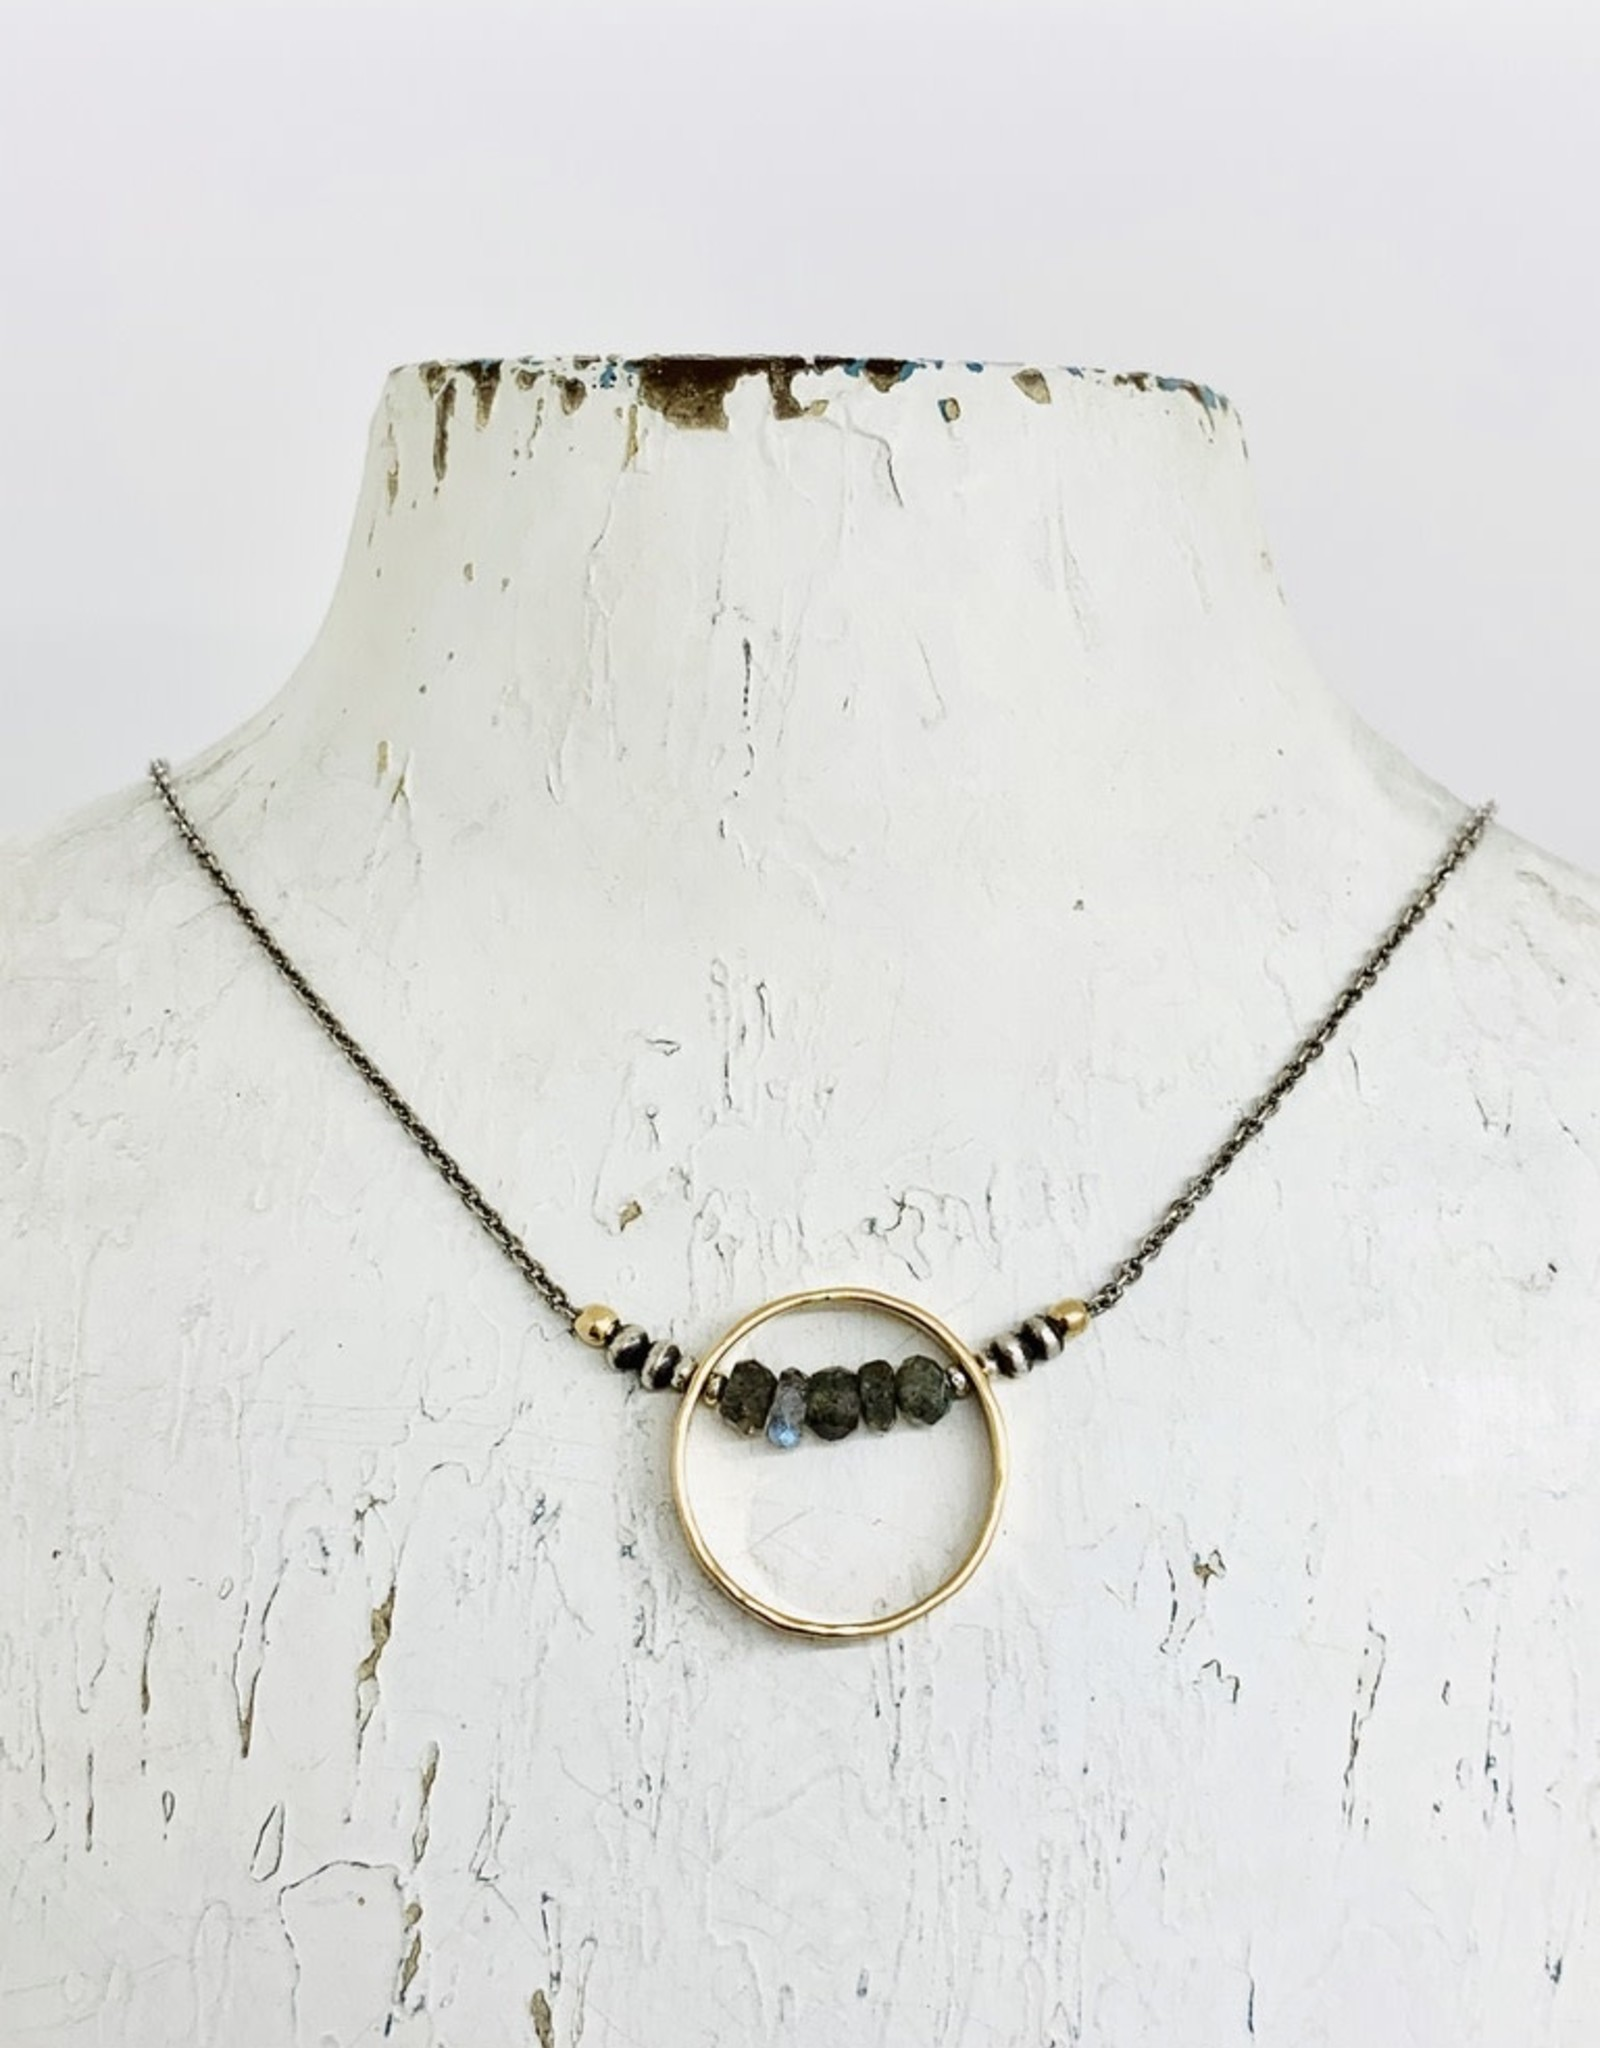 Handmade Necklace with 14kt Gold Filled Circle with Faceted Labradorite on Oxidized Sterling Chain